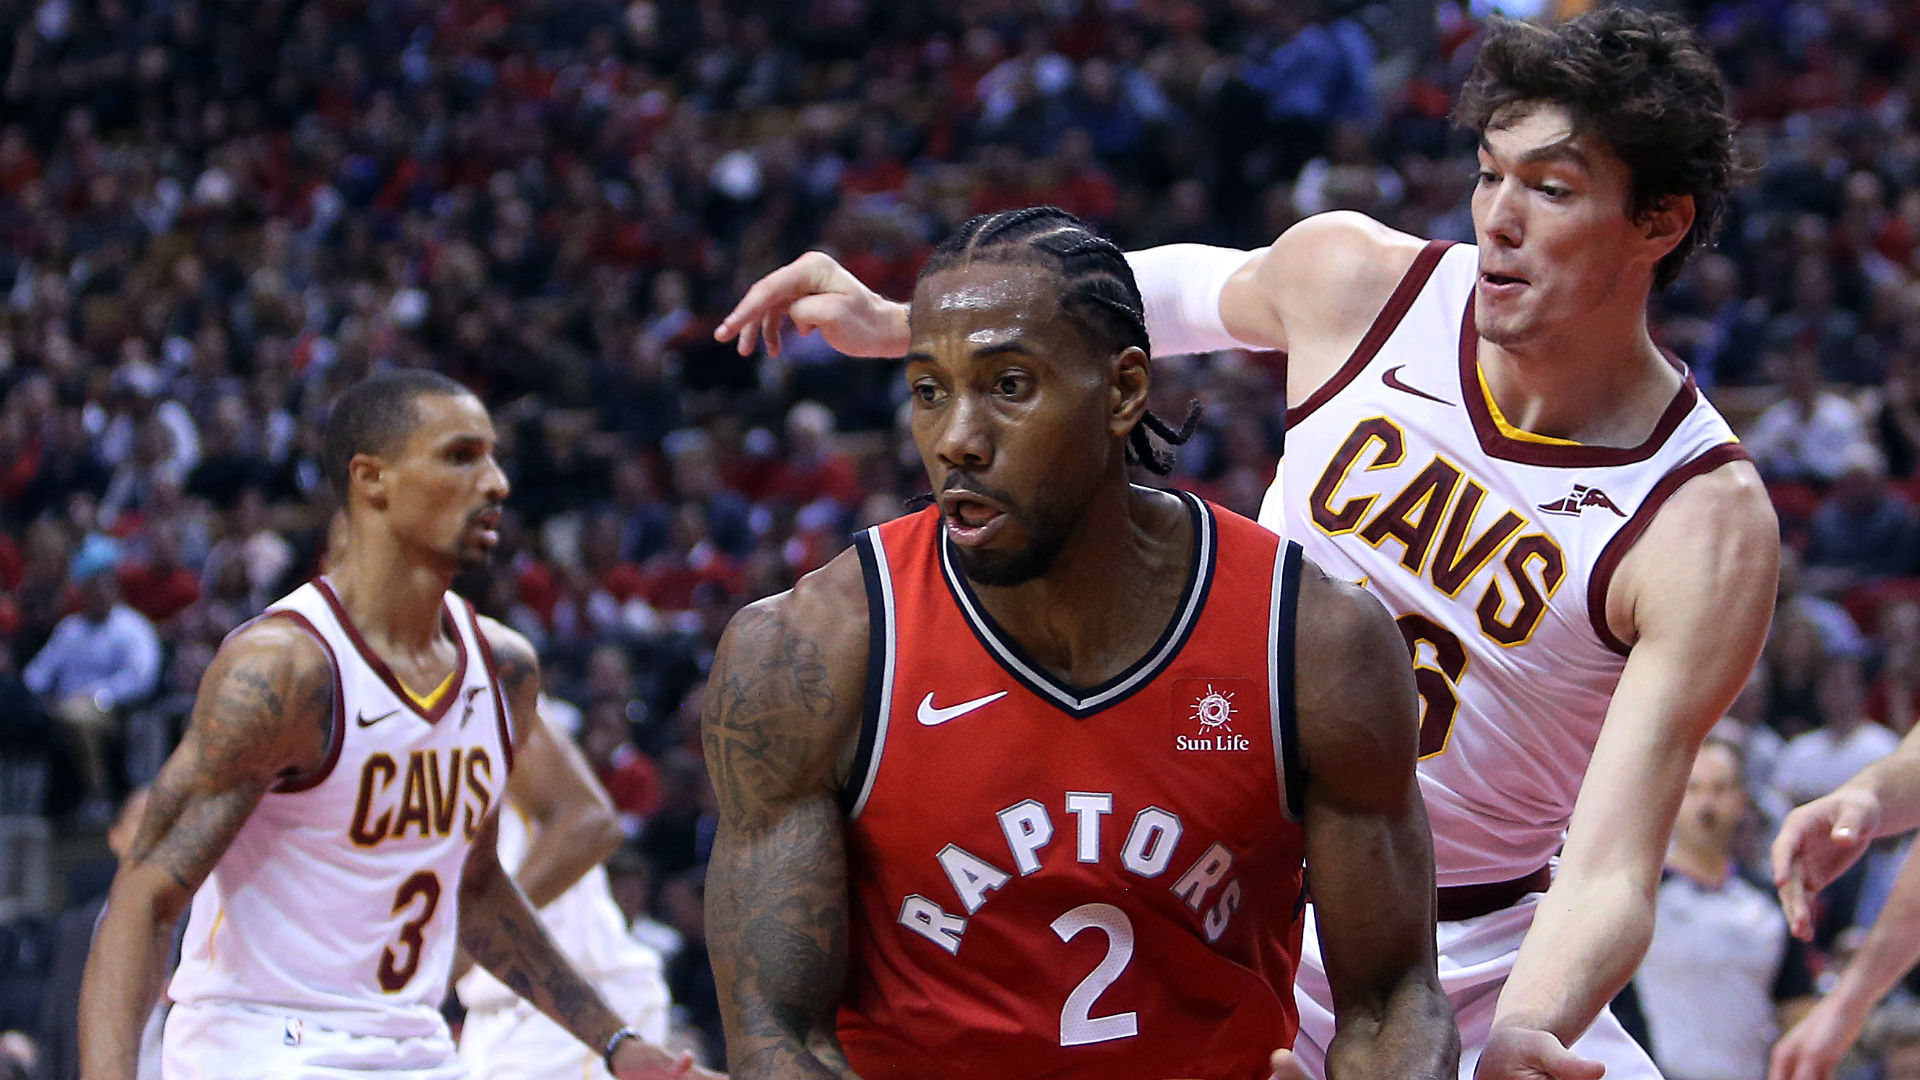 c3c0871b69ce NBA wrap  Raptors knock off 76ers in battle of Eastern Conference  heavyweights